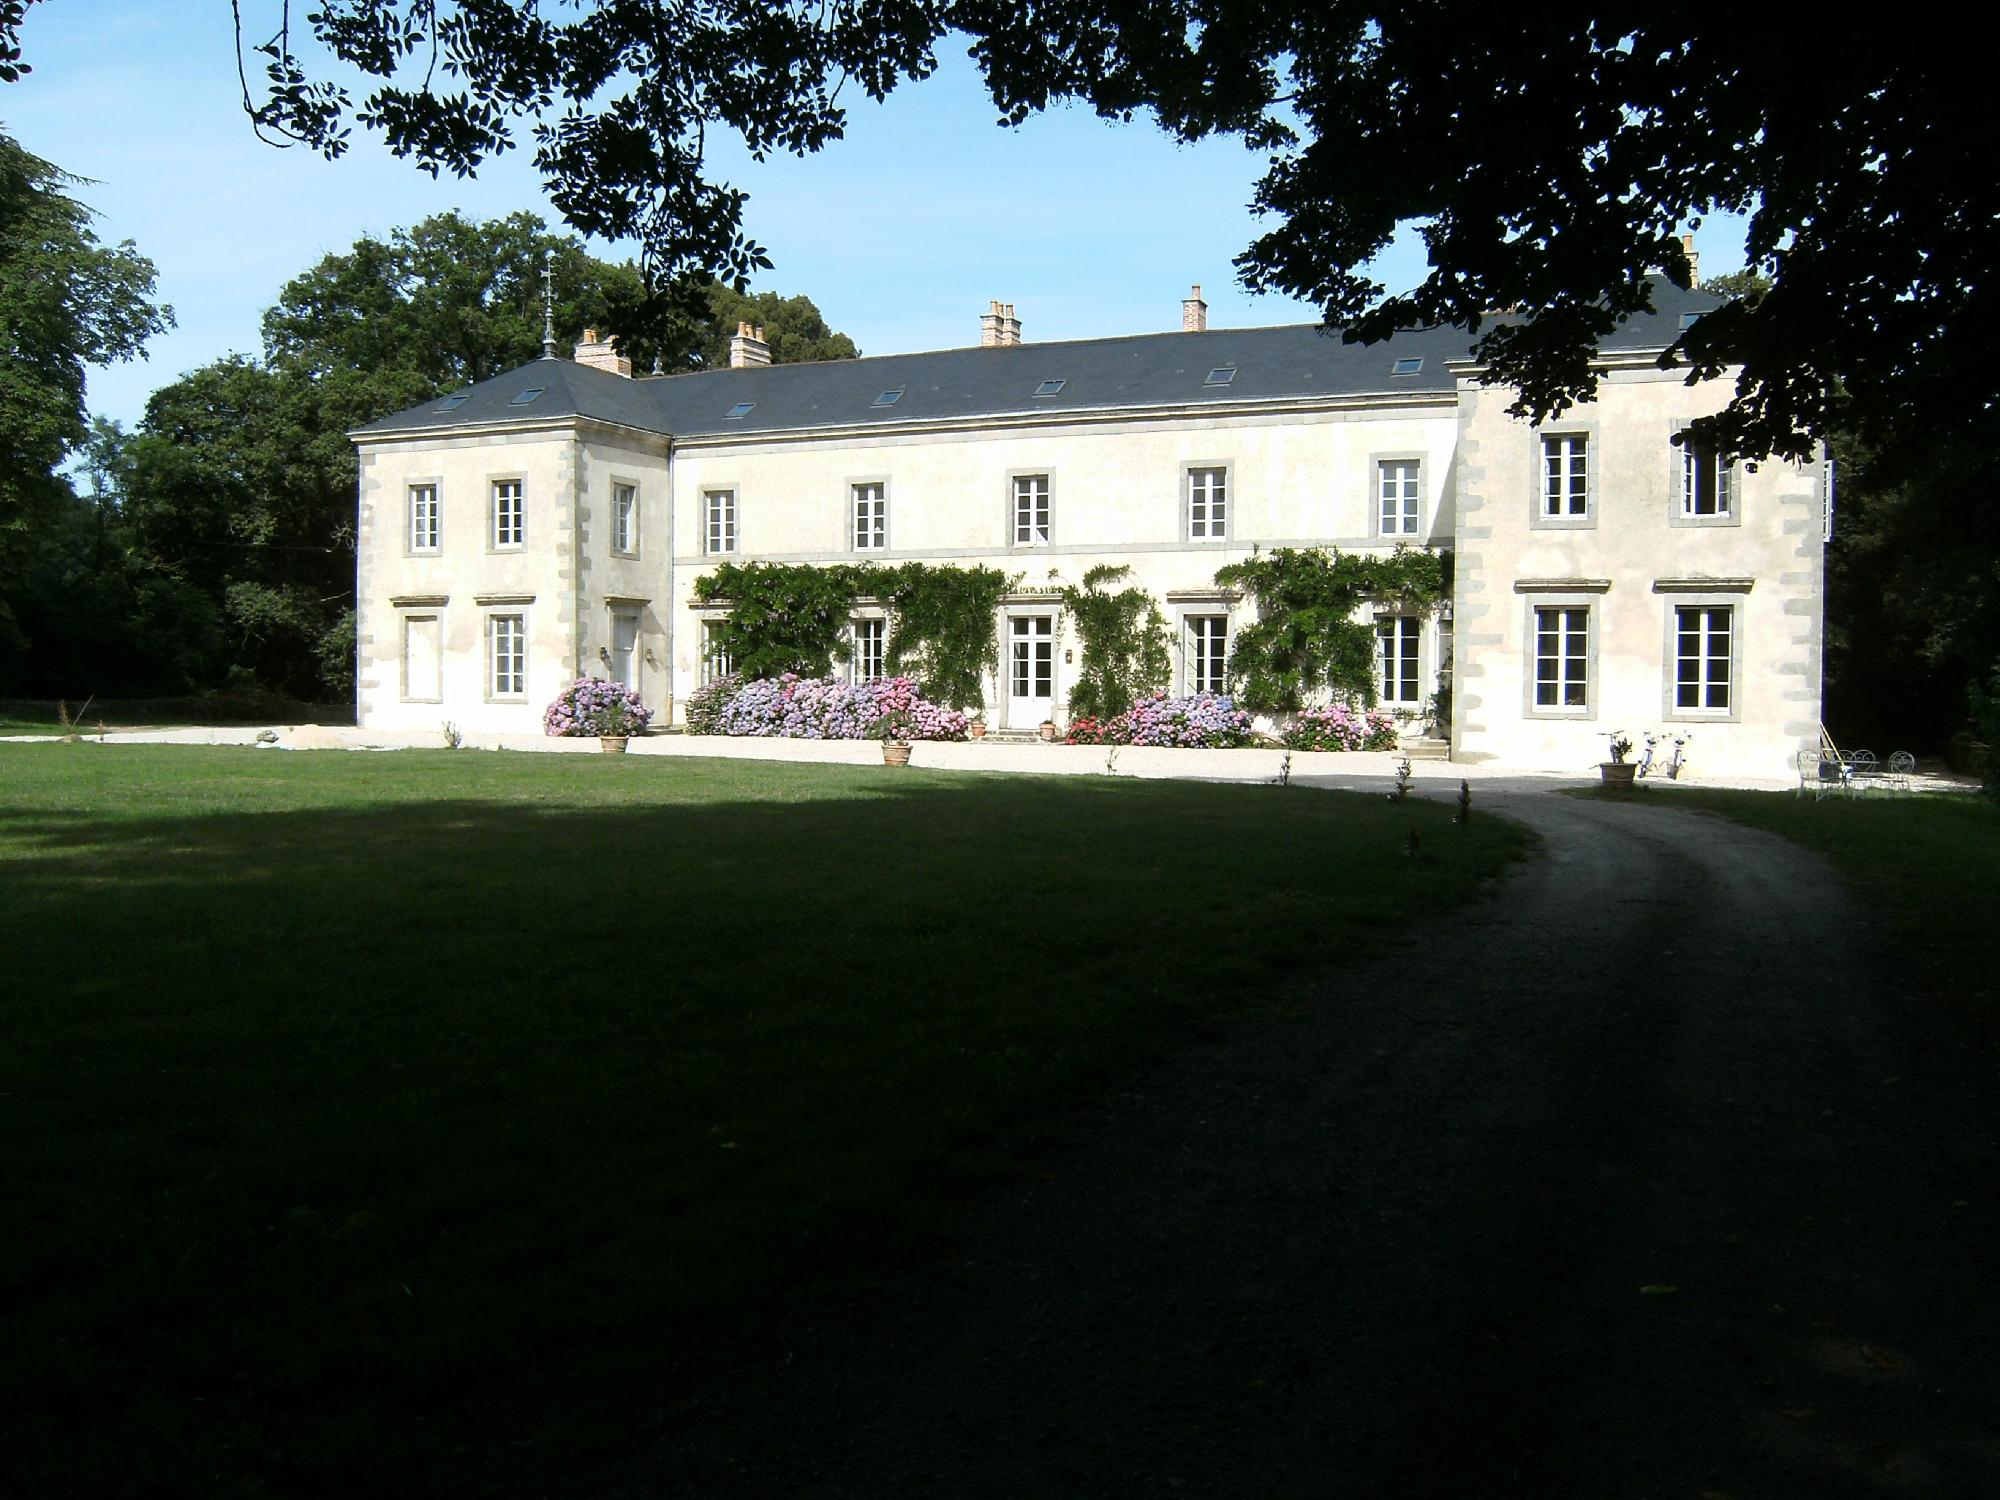 Chateau de la Marronniere